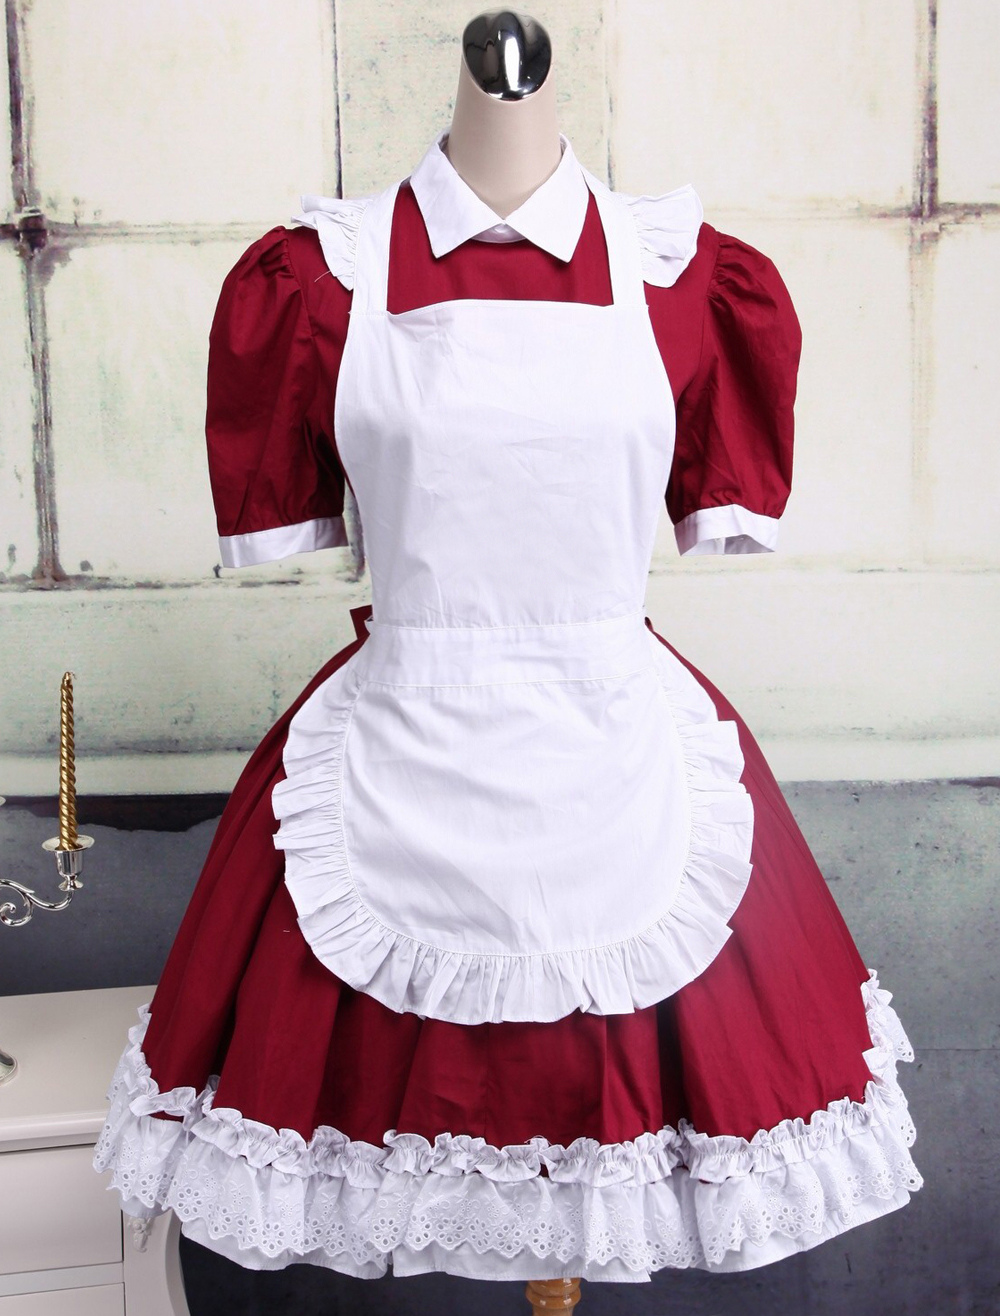 Cotton Dark Red And White Cosplay Lolita Dress With Apron